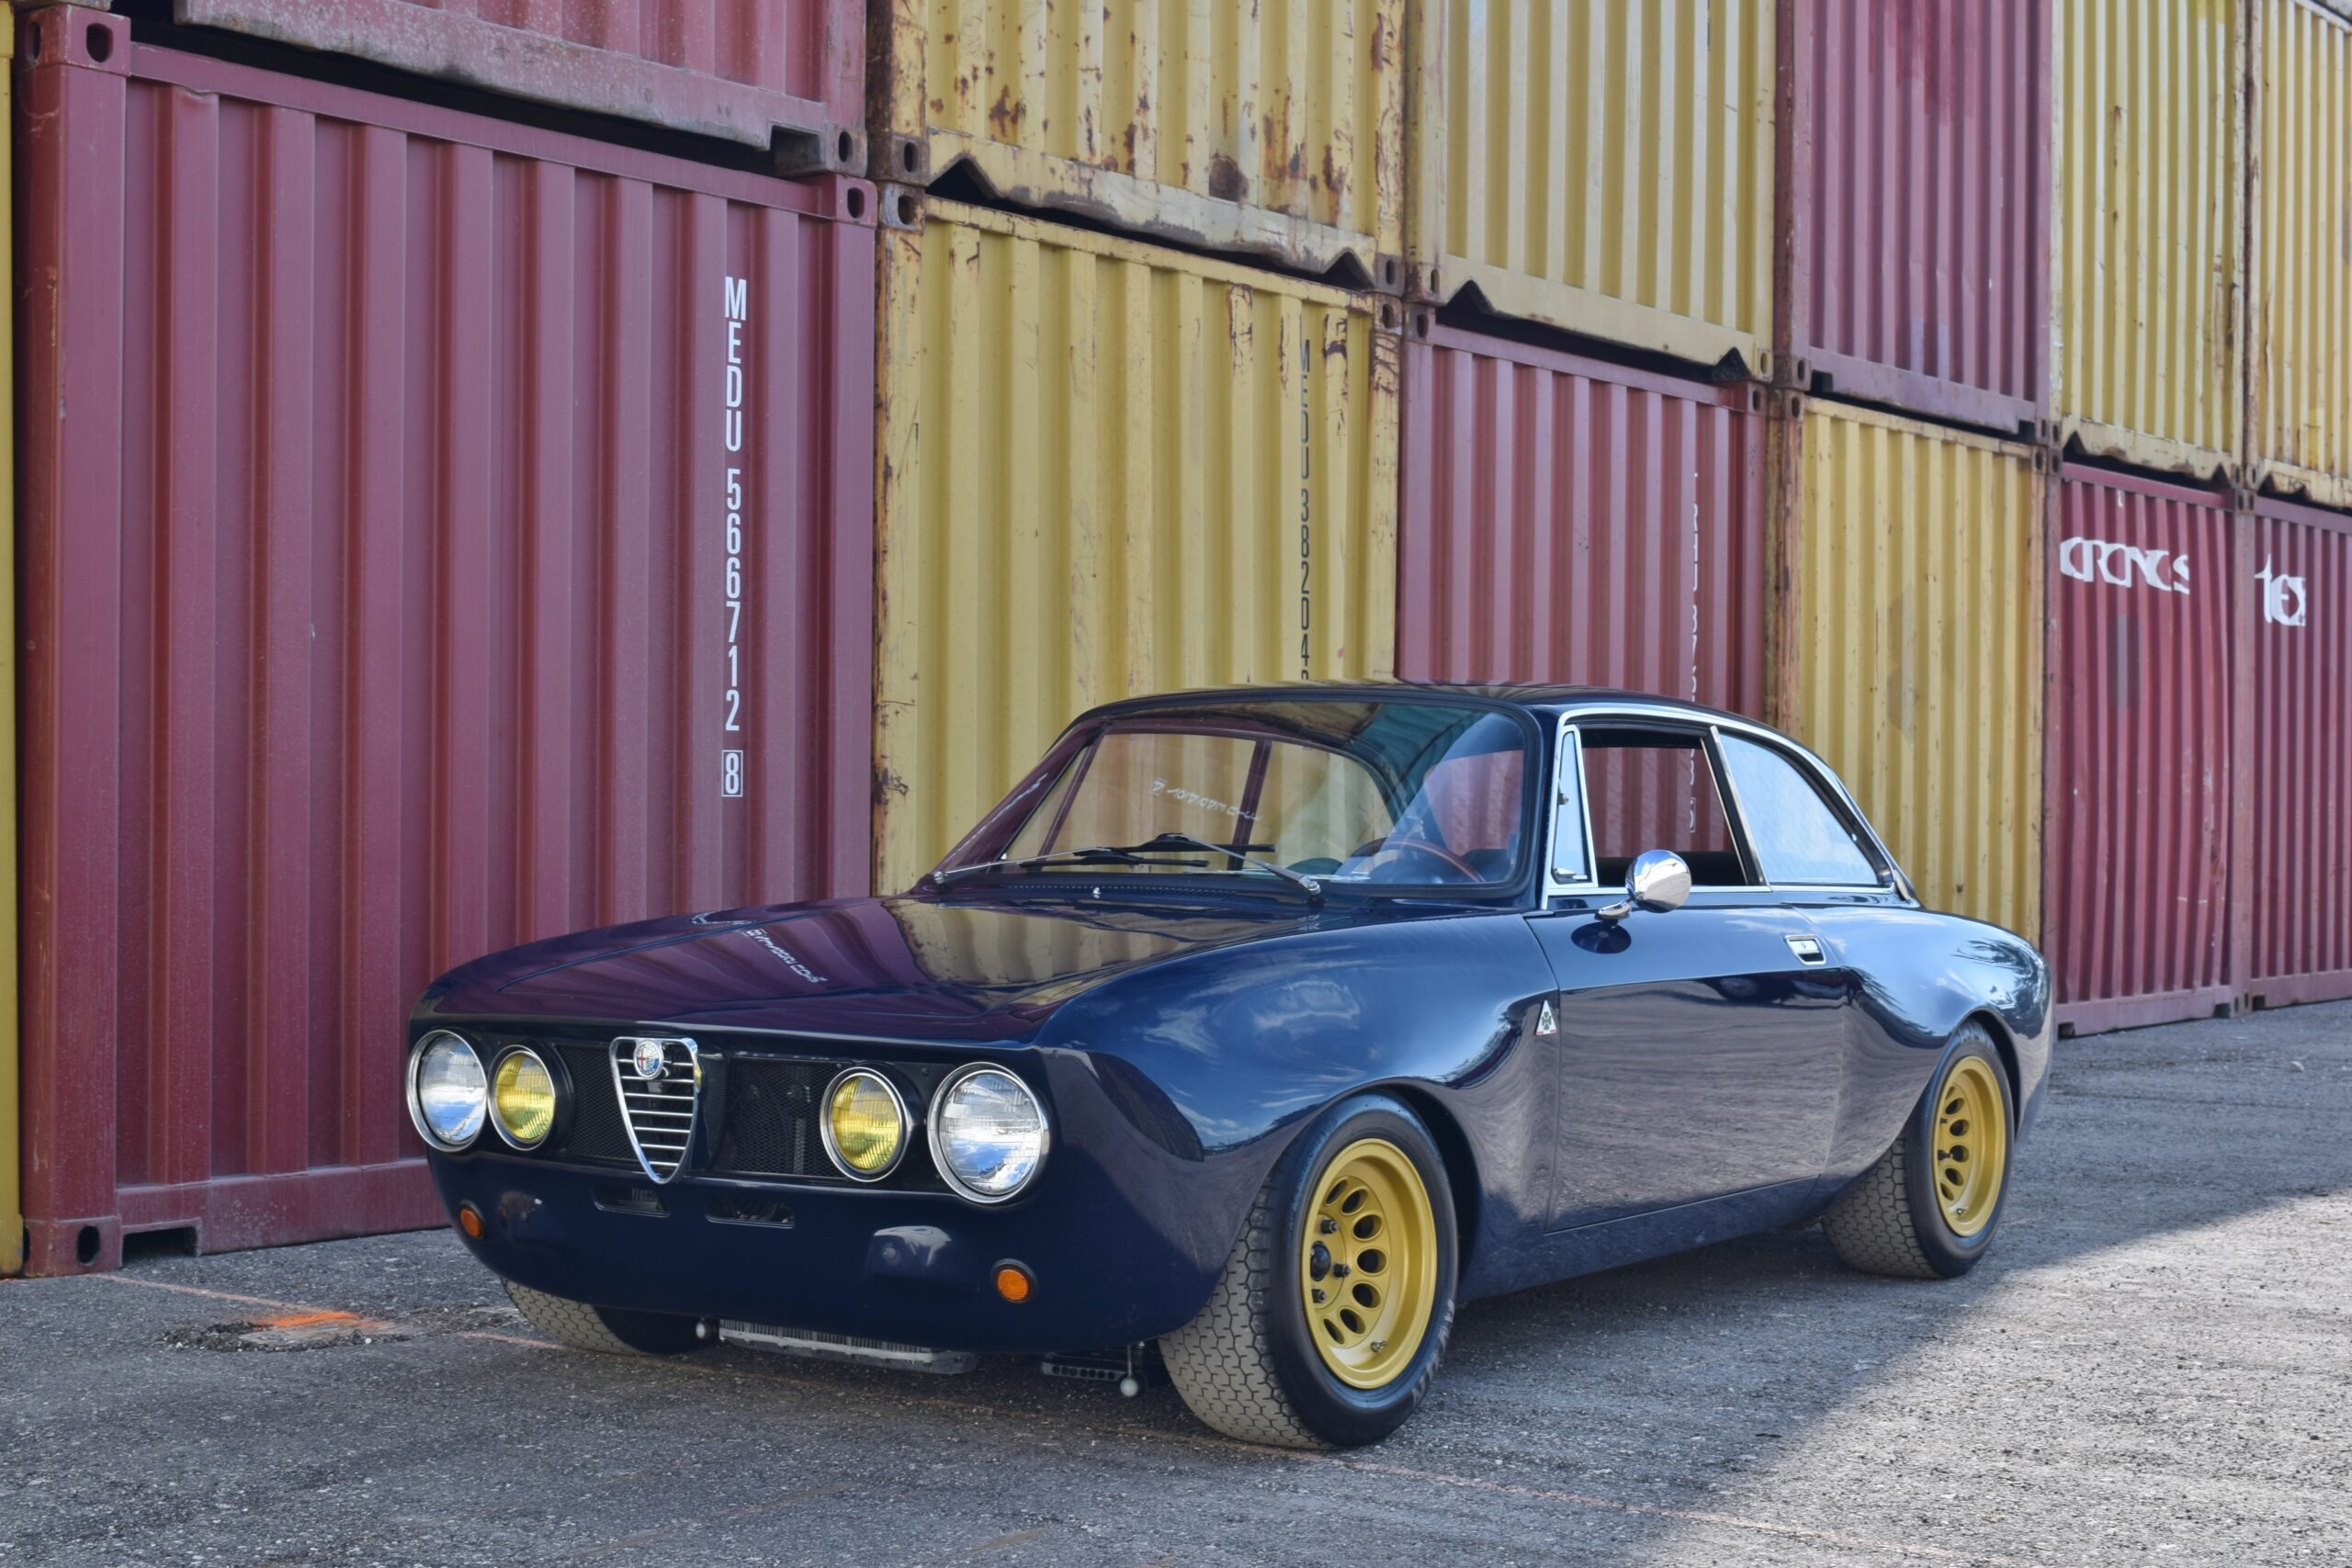 1971 Alfa Romeo GTV GTAM Tribute Alfaholics Built 2.0L Twin Plug Quaife Sequential trans- GTAM Brakes/ Suspension